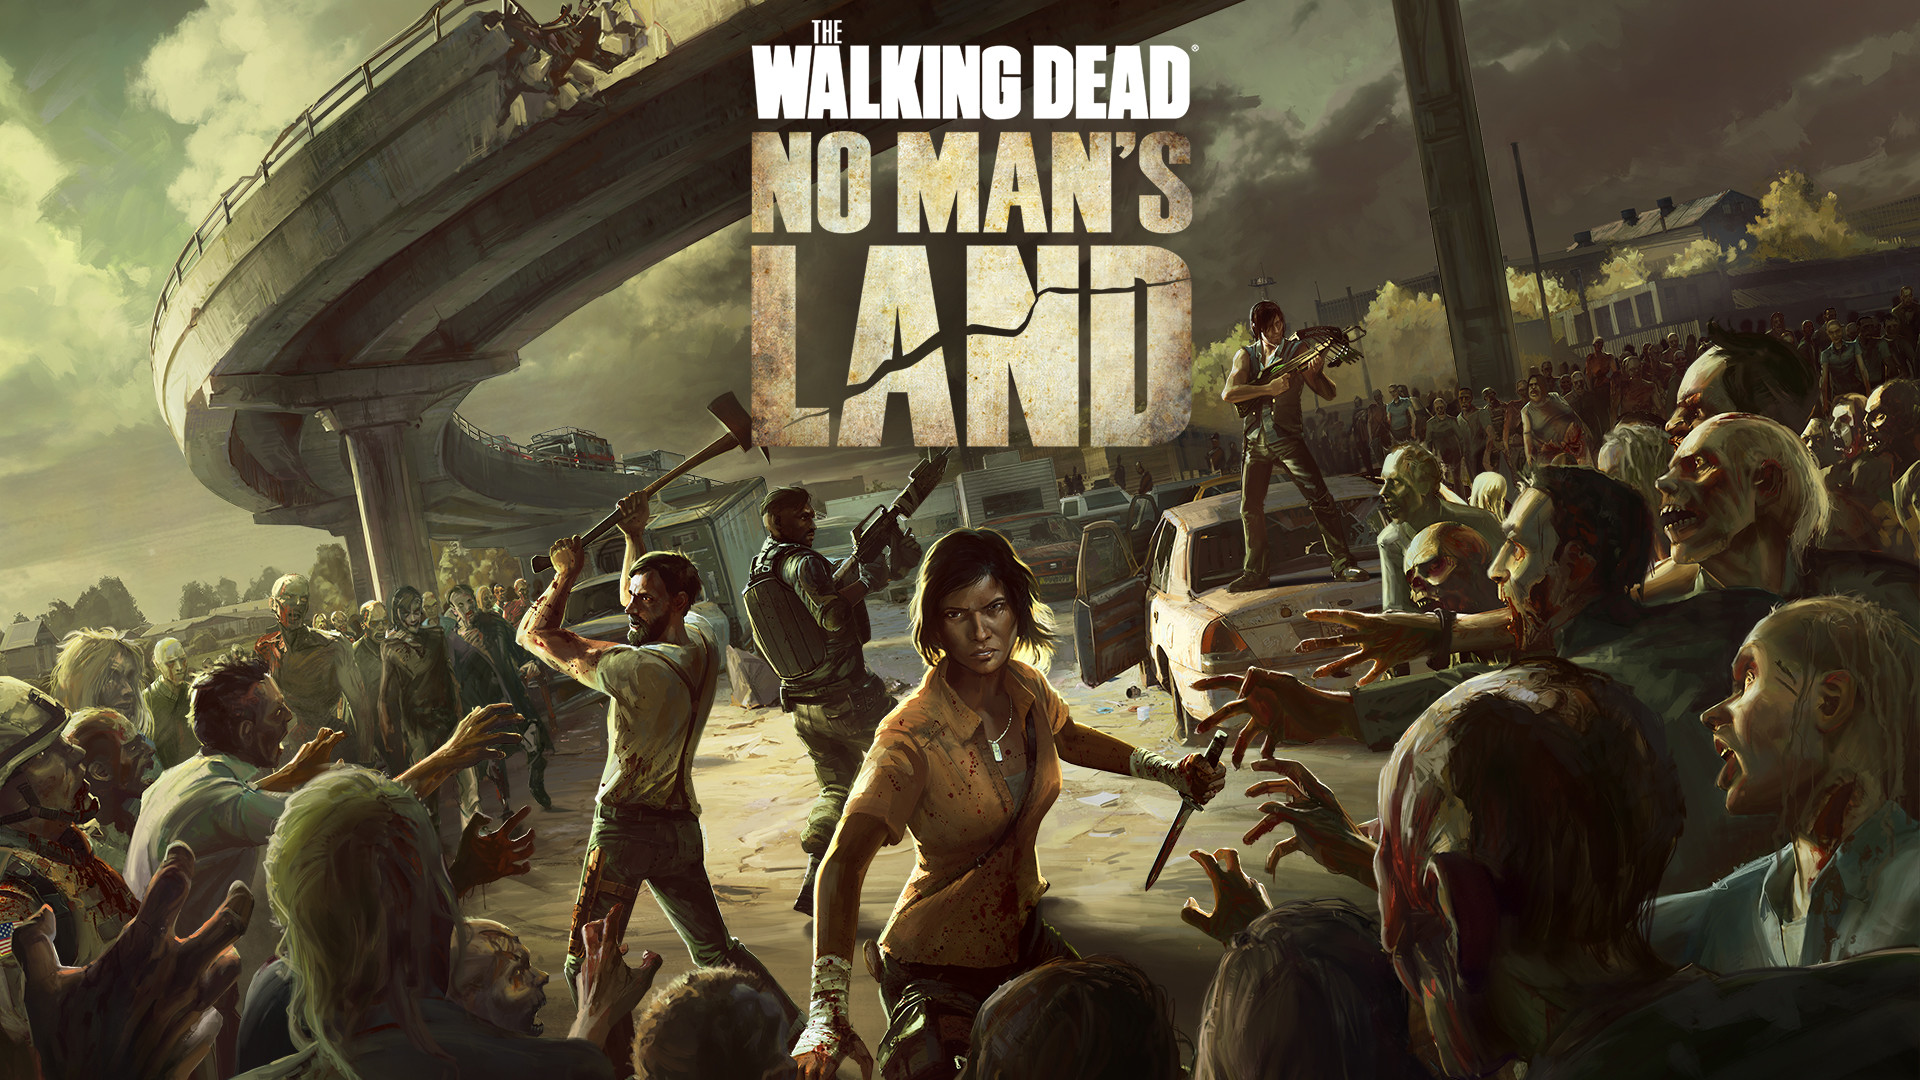 … walking dead no man s land integrated to the walking dead; walking dead  live wallpapers wallpapers …